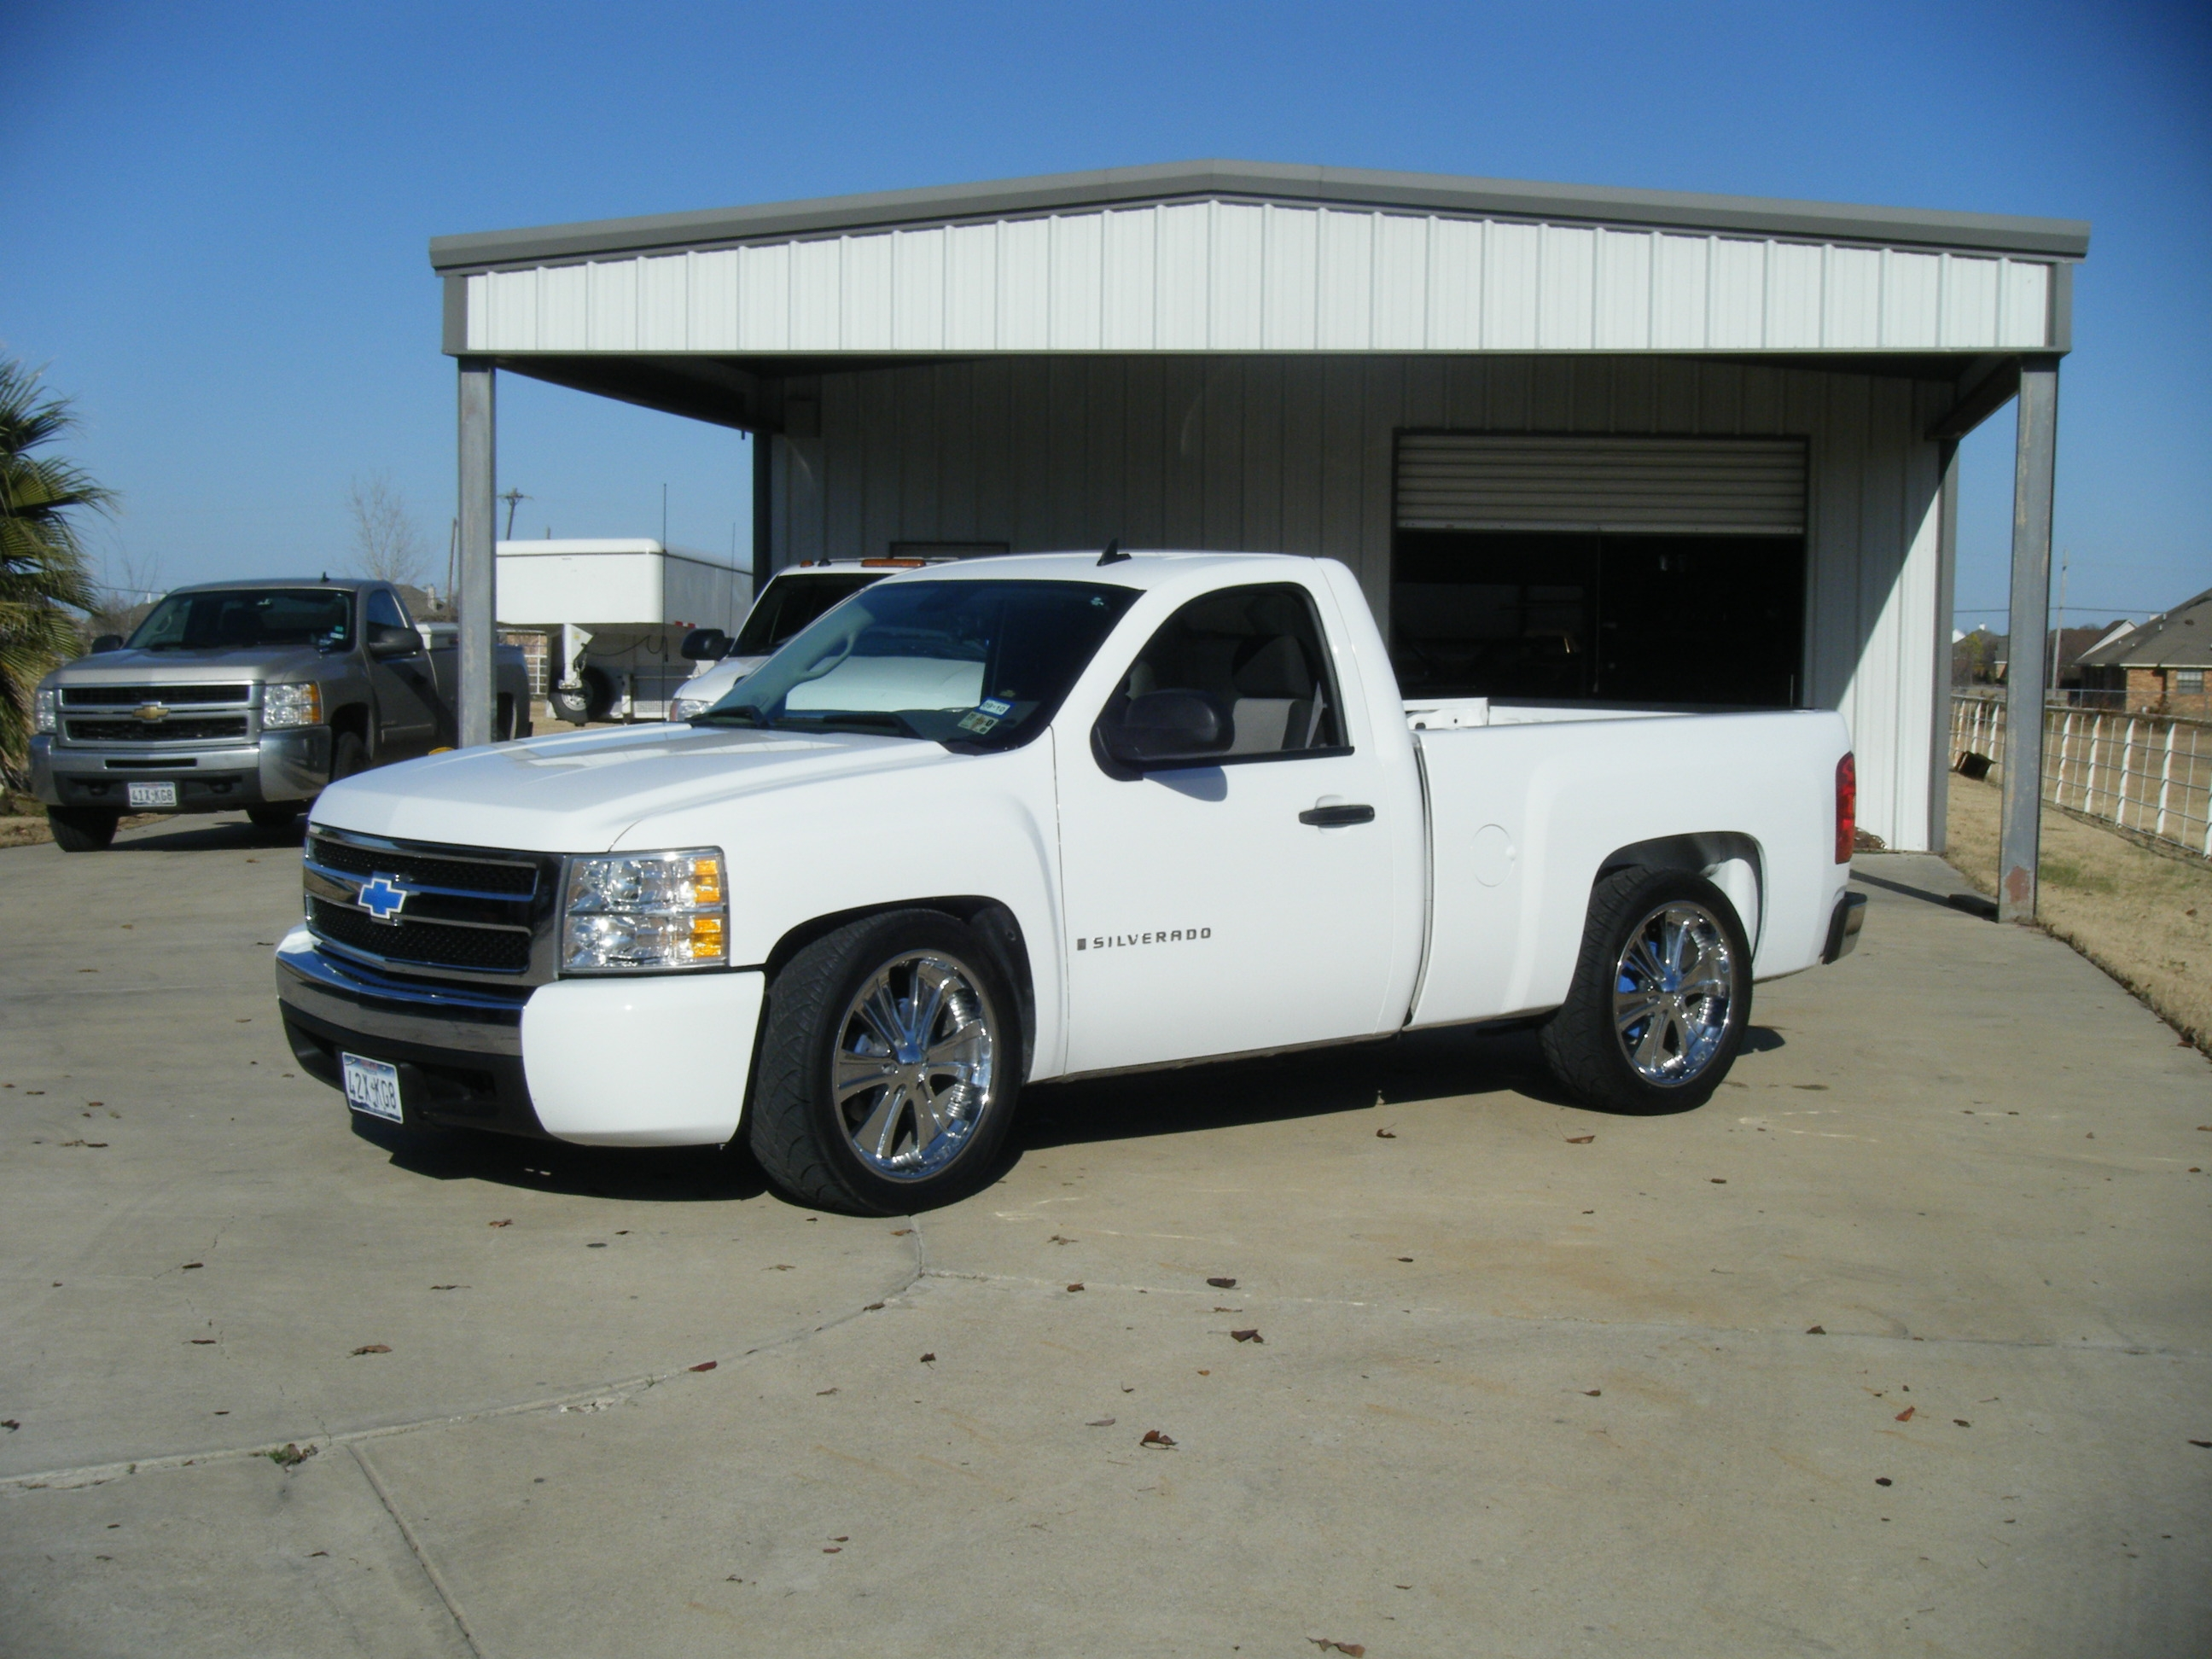 2008 Chevrolet Silverado 1500 Regular Cab